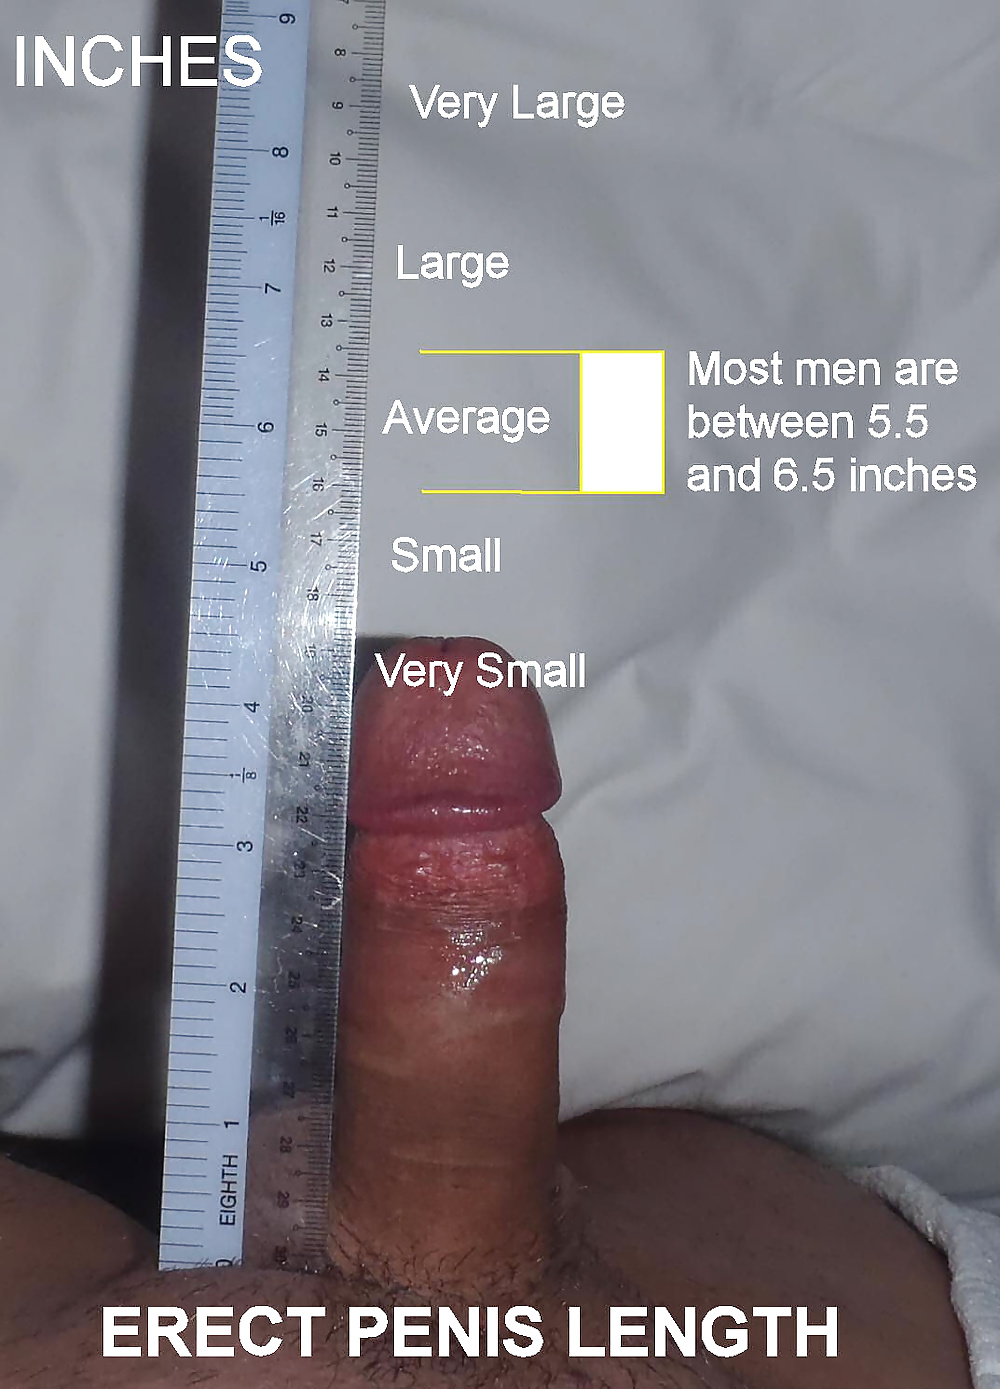 How does an average man's penis compare to a horse penis in size